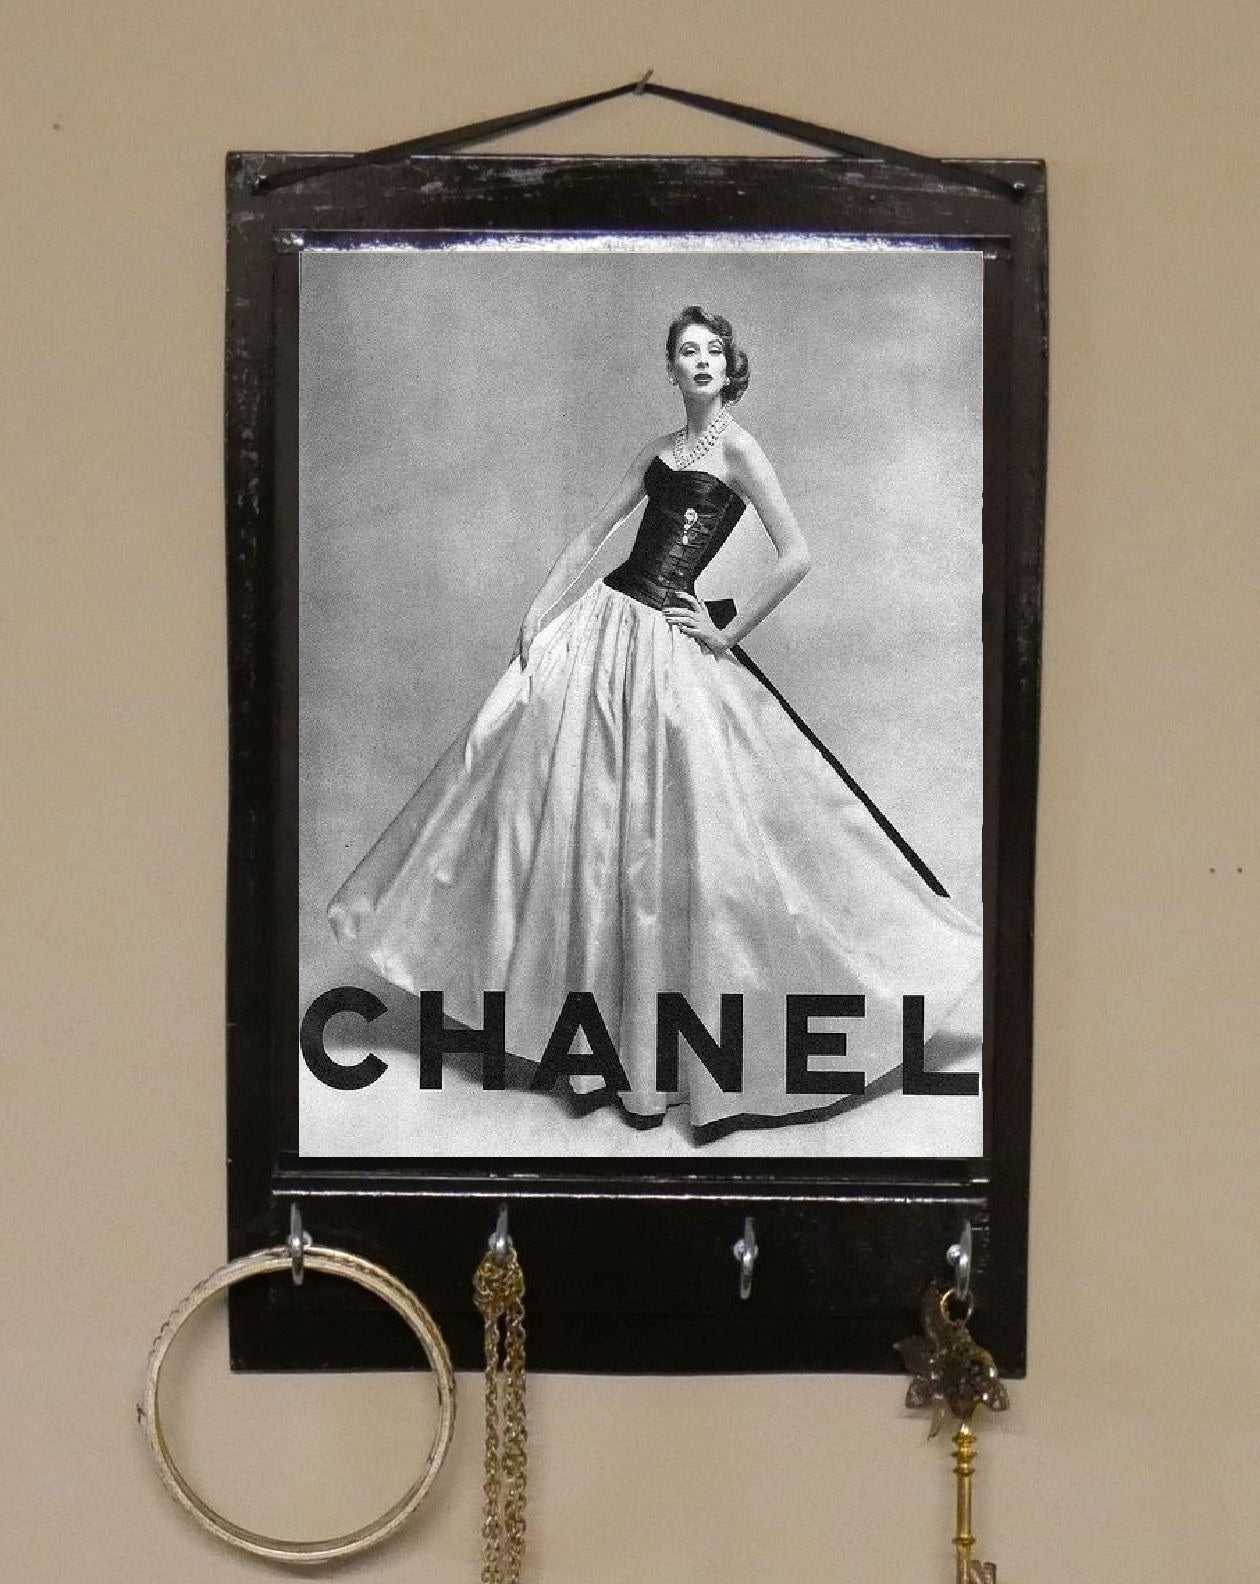 Chanel-Print-Key-Rack-Holder-Nchanted-Gifts